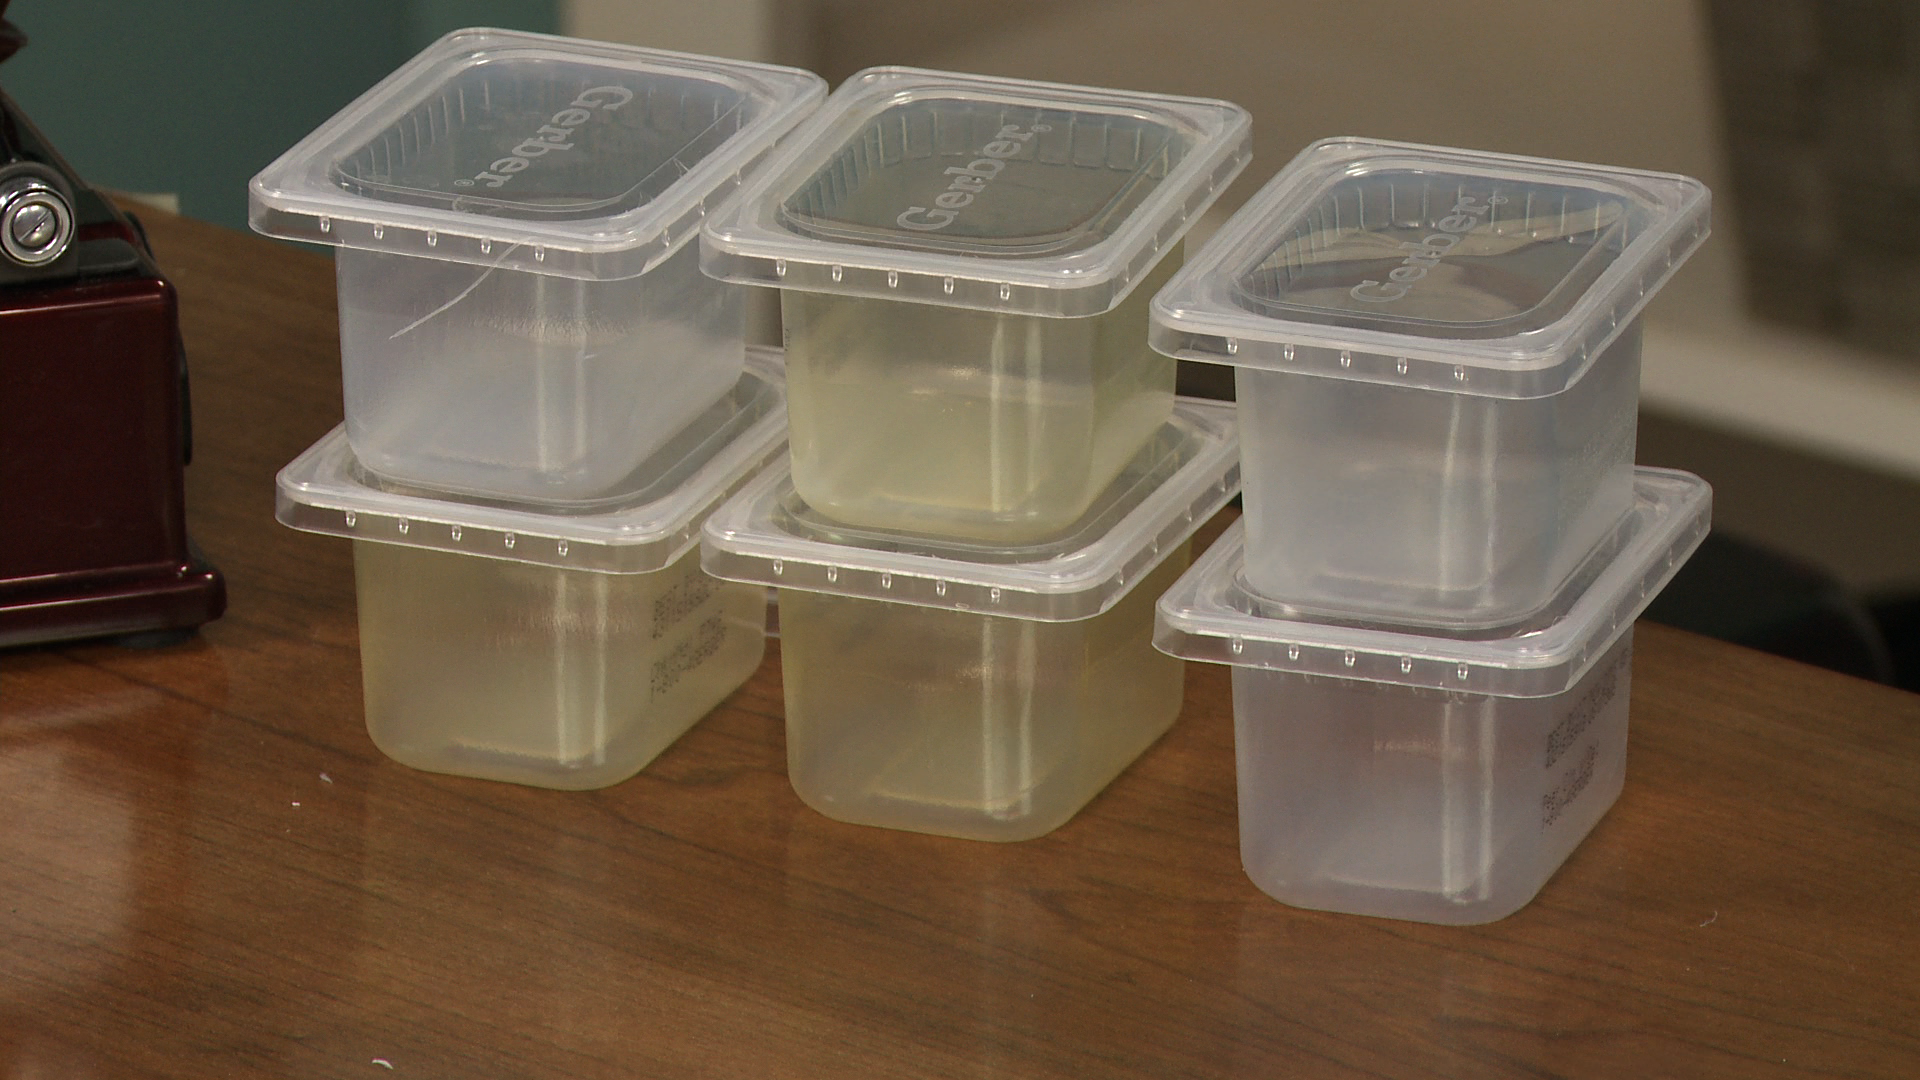 Baby Food Containers As Quilting Supplies Storage